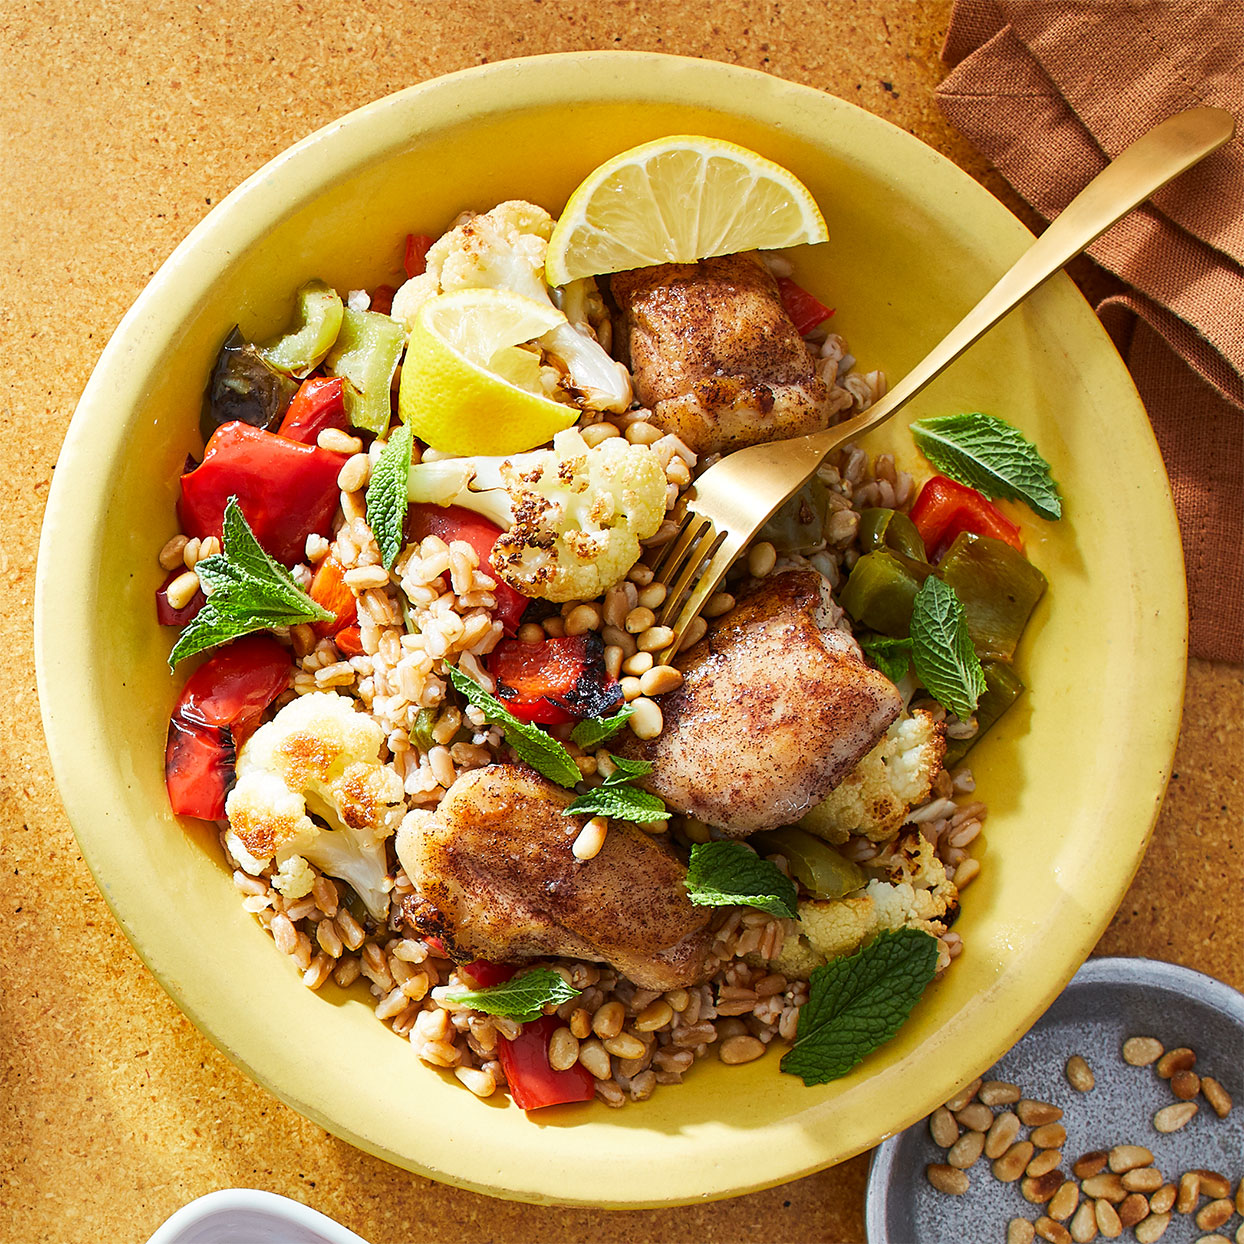 Grilled Chicken with Farro & Roasted Cauliflower Trusted Brands